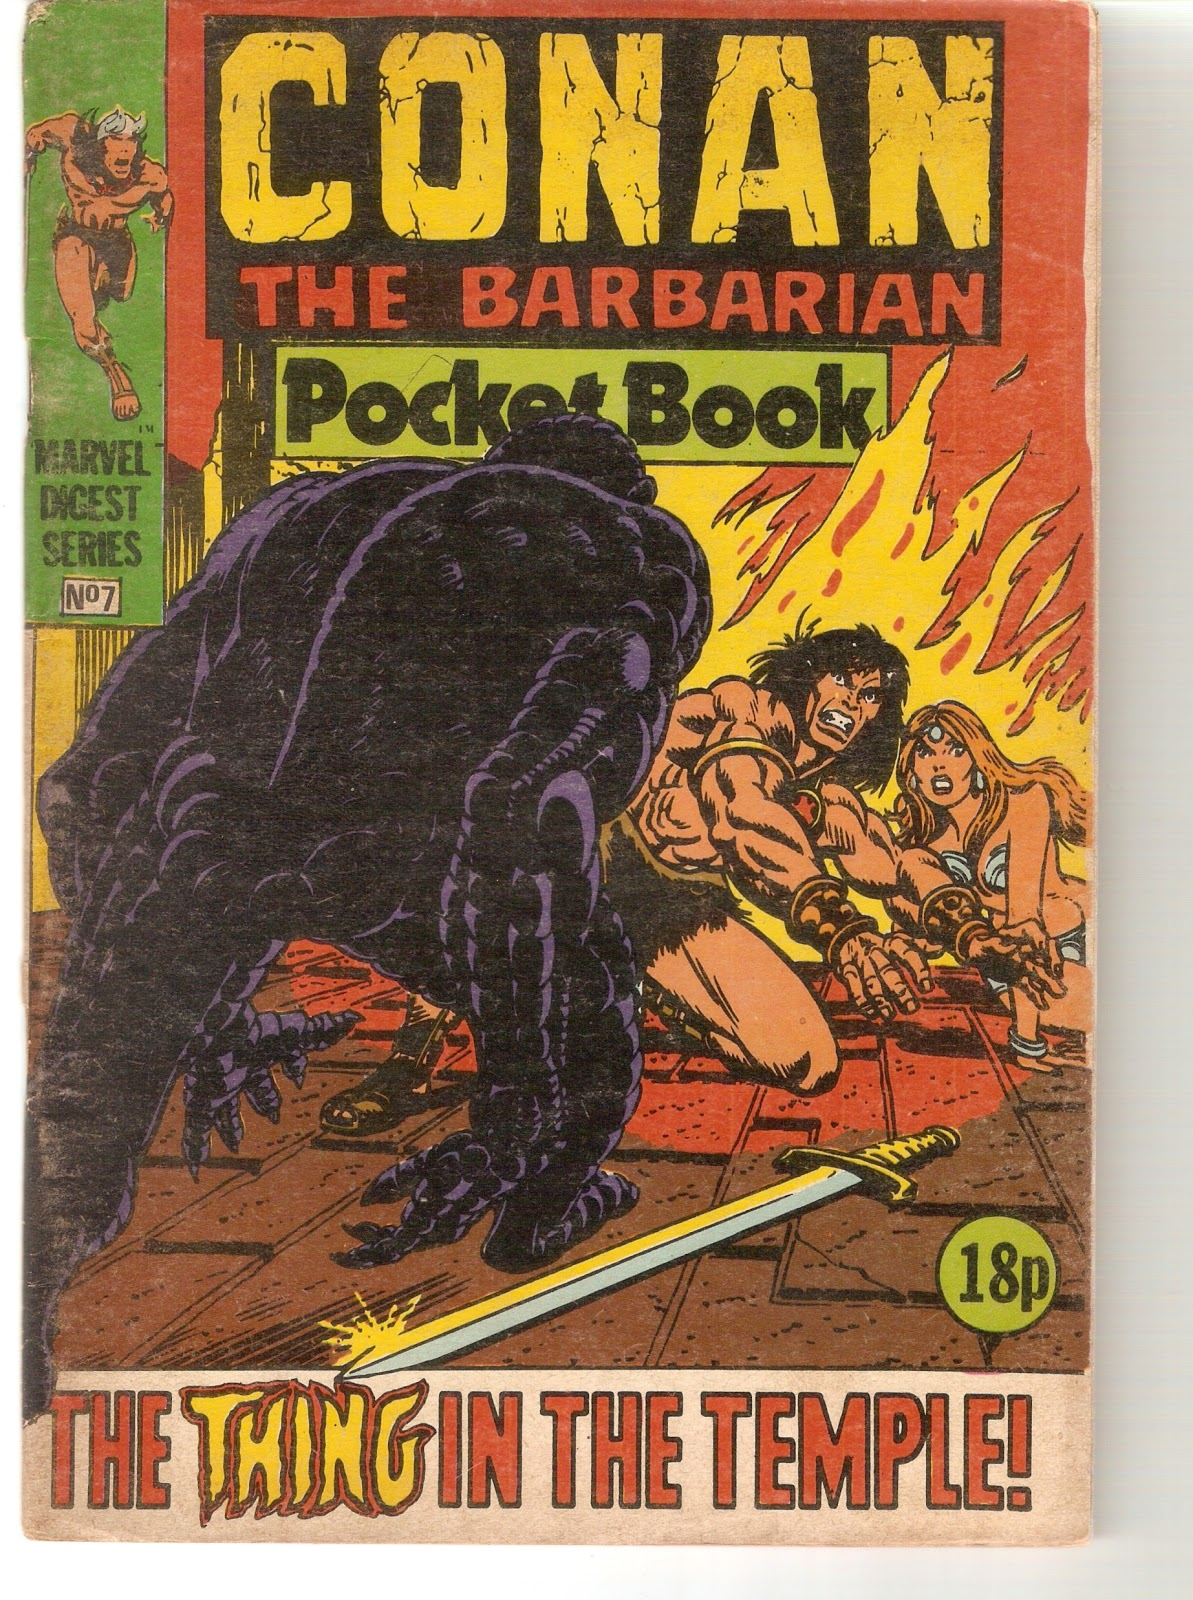 C And C >> ComicConquest: Conan the barbarian - Marvel Pocket Books